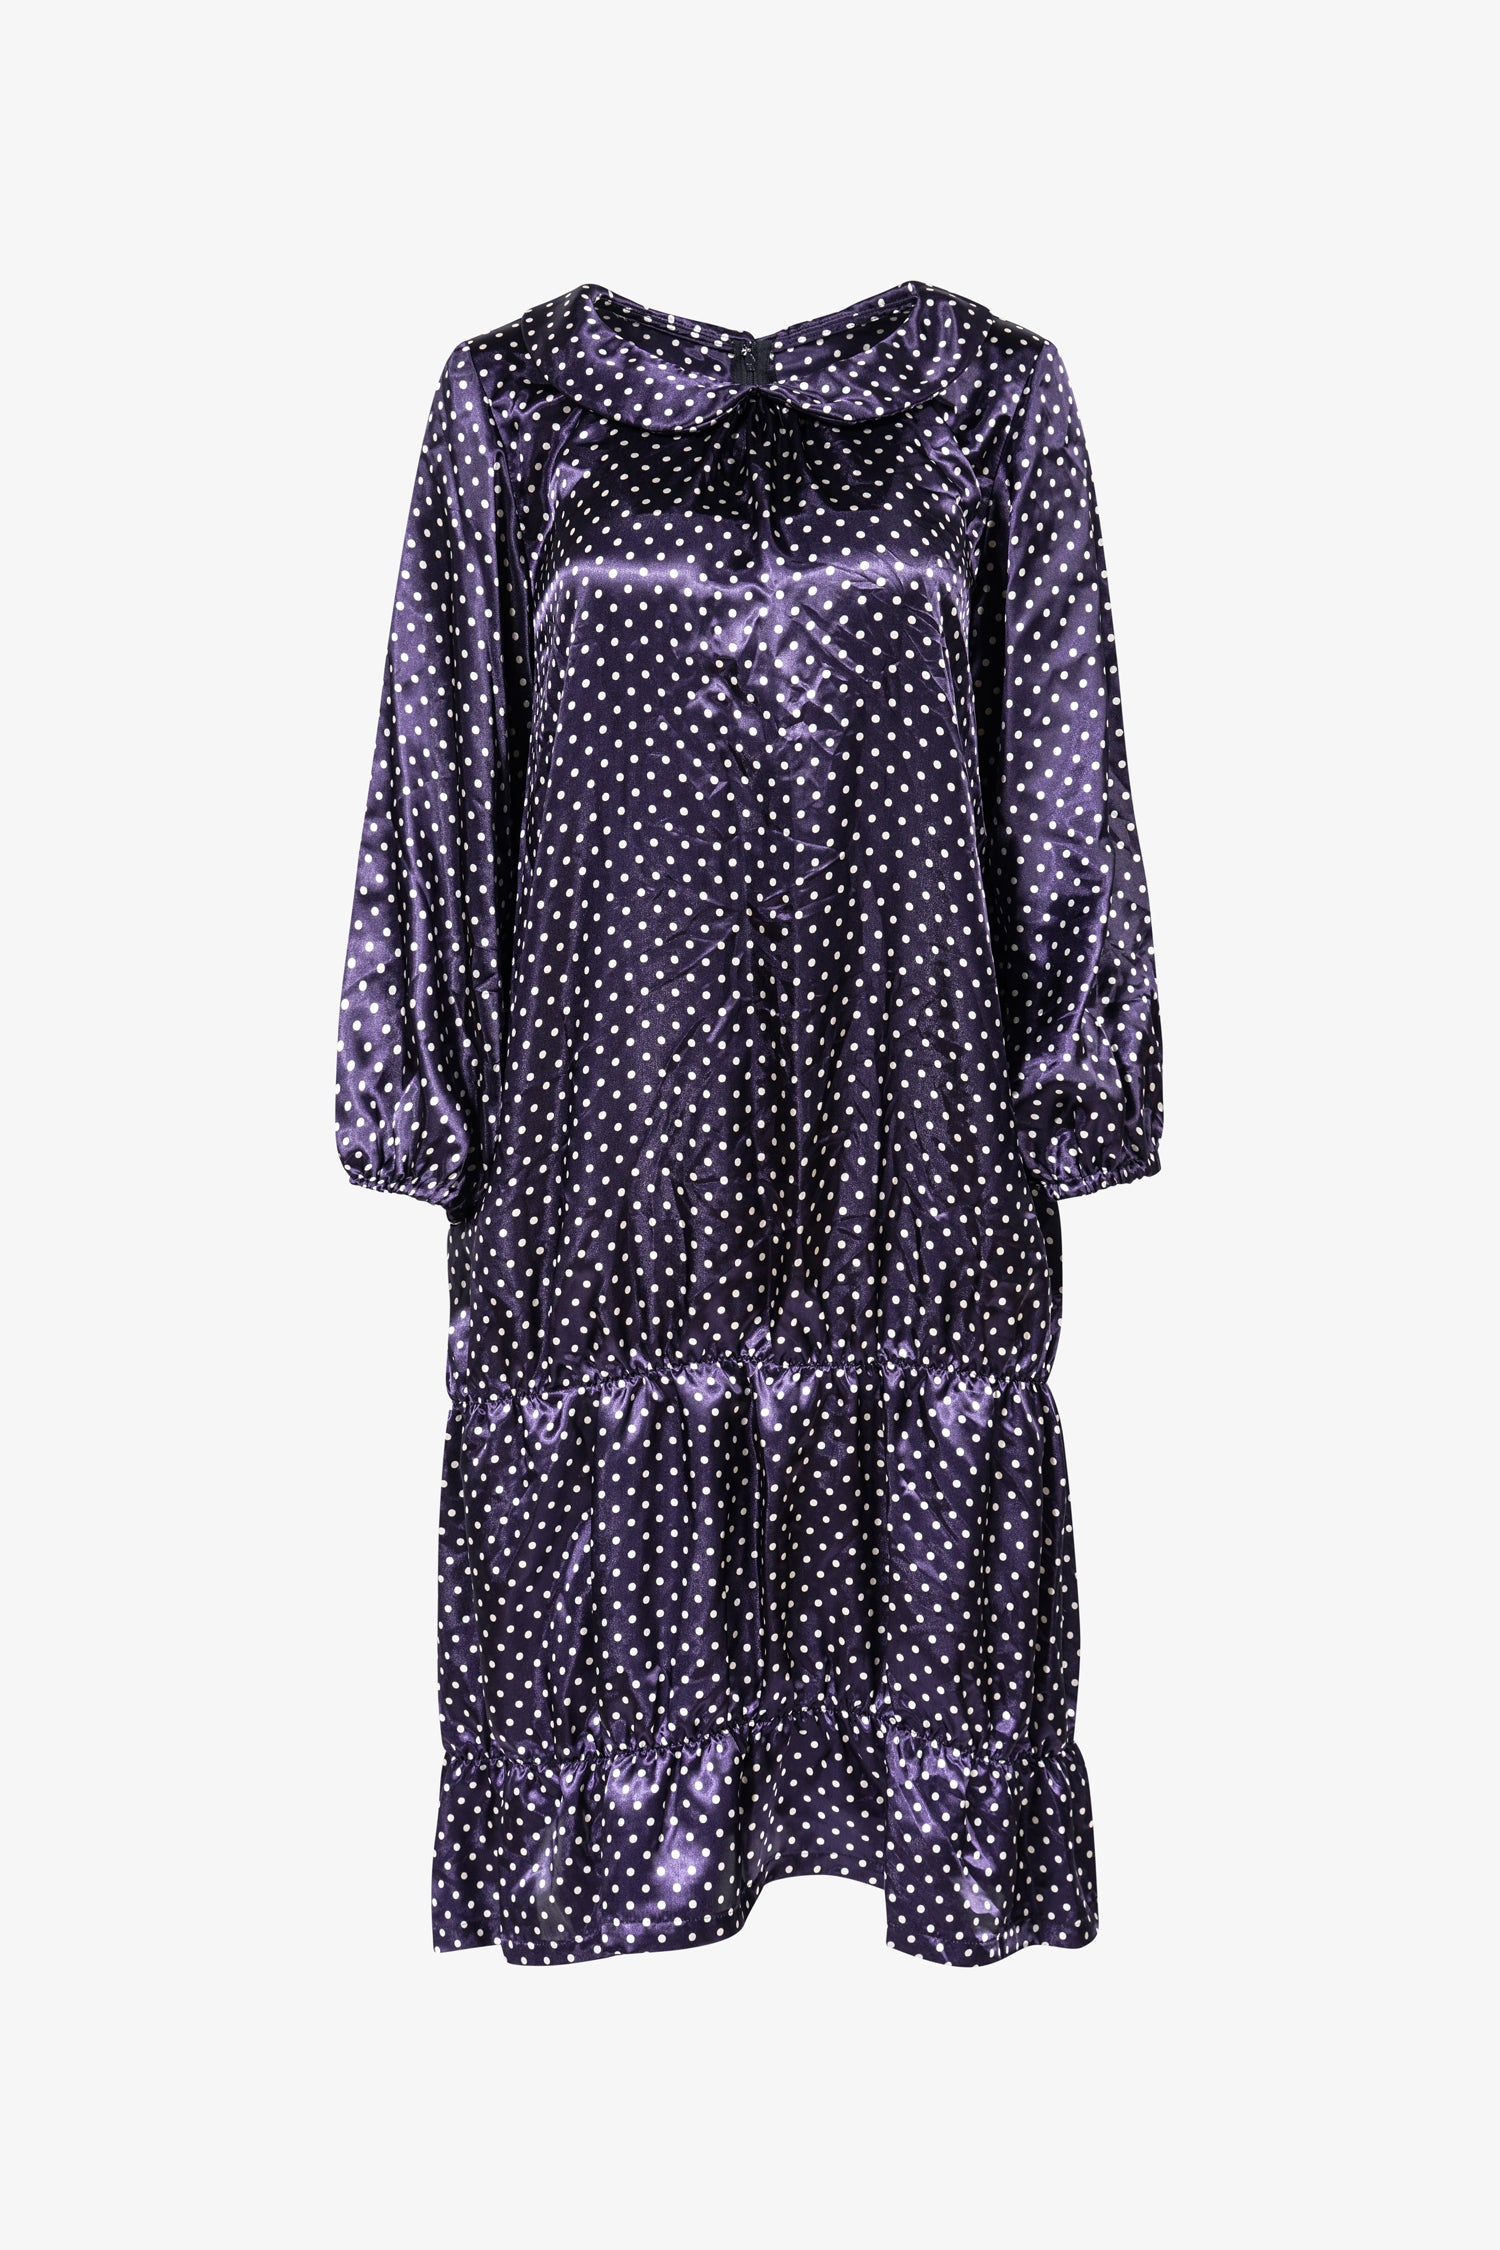 Selectshop FRAME - COMME DES GARÇONS GIRL Satin Polka Dot Dress Dress Dubai